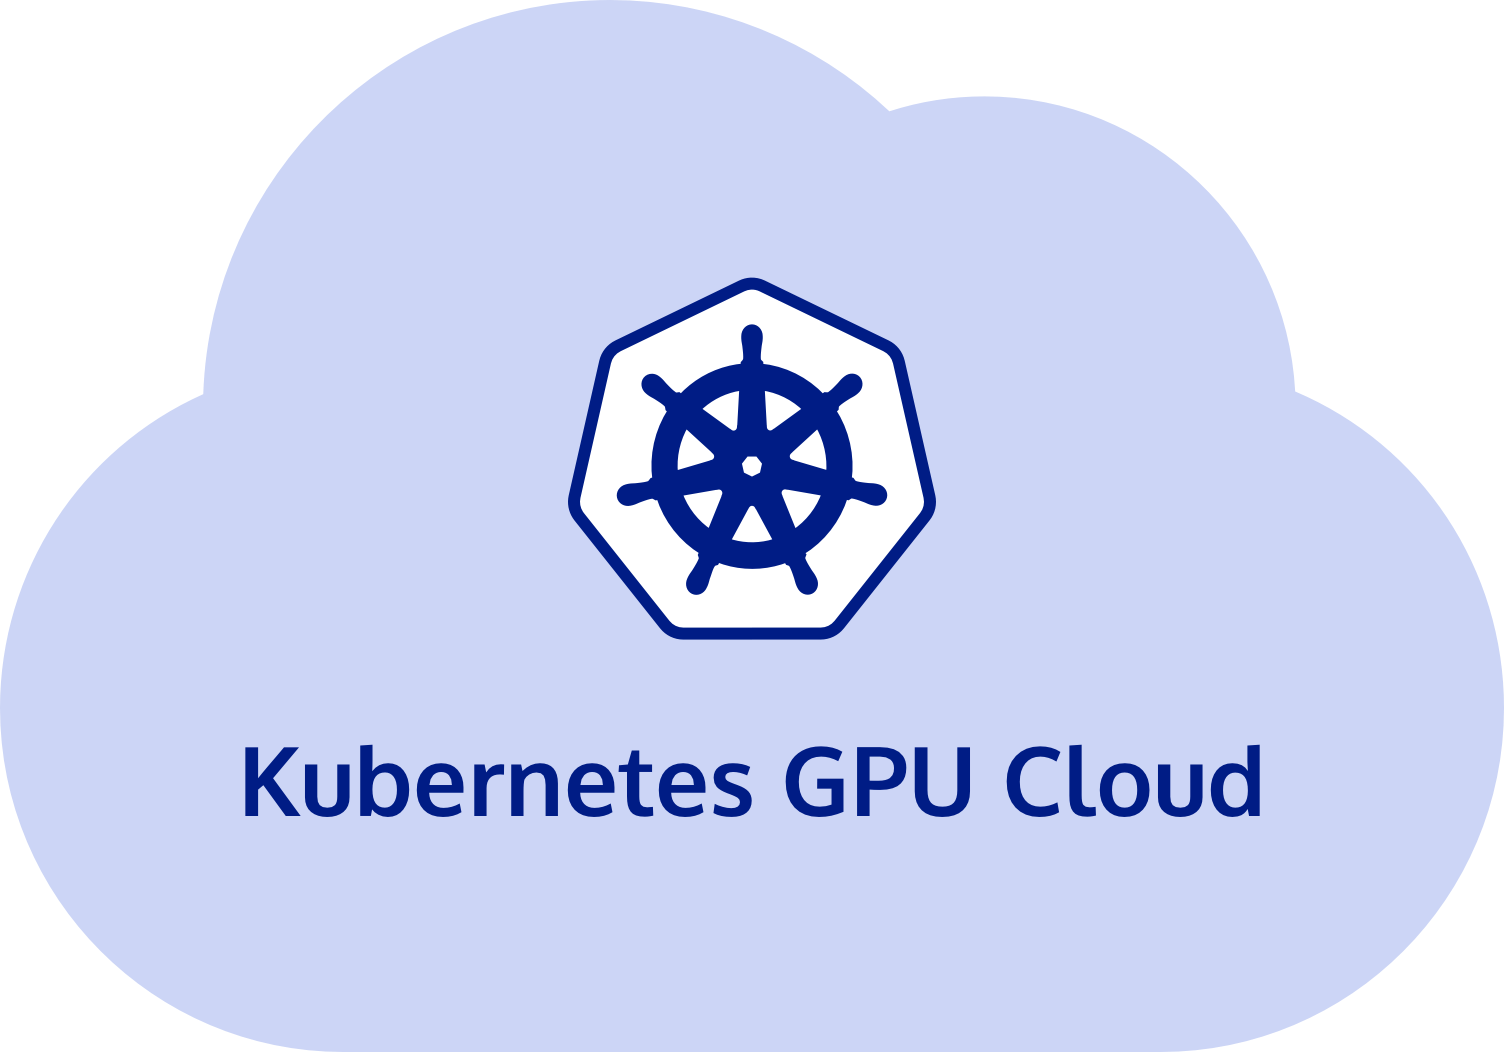 Cloudalize's GPU Cloud enables Kubernetes for machine learning, advanced research on- and off-campus via Kubernetes GPU Cloud.